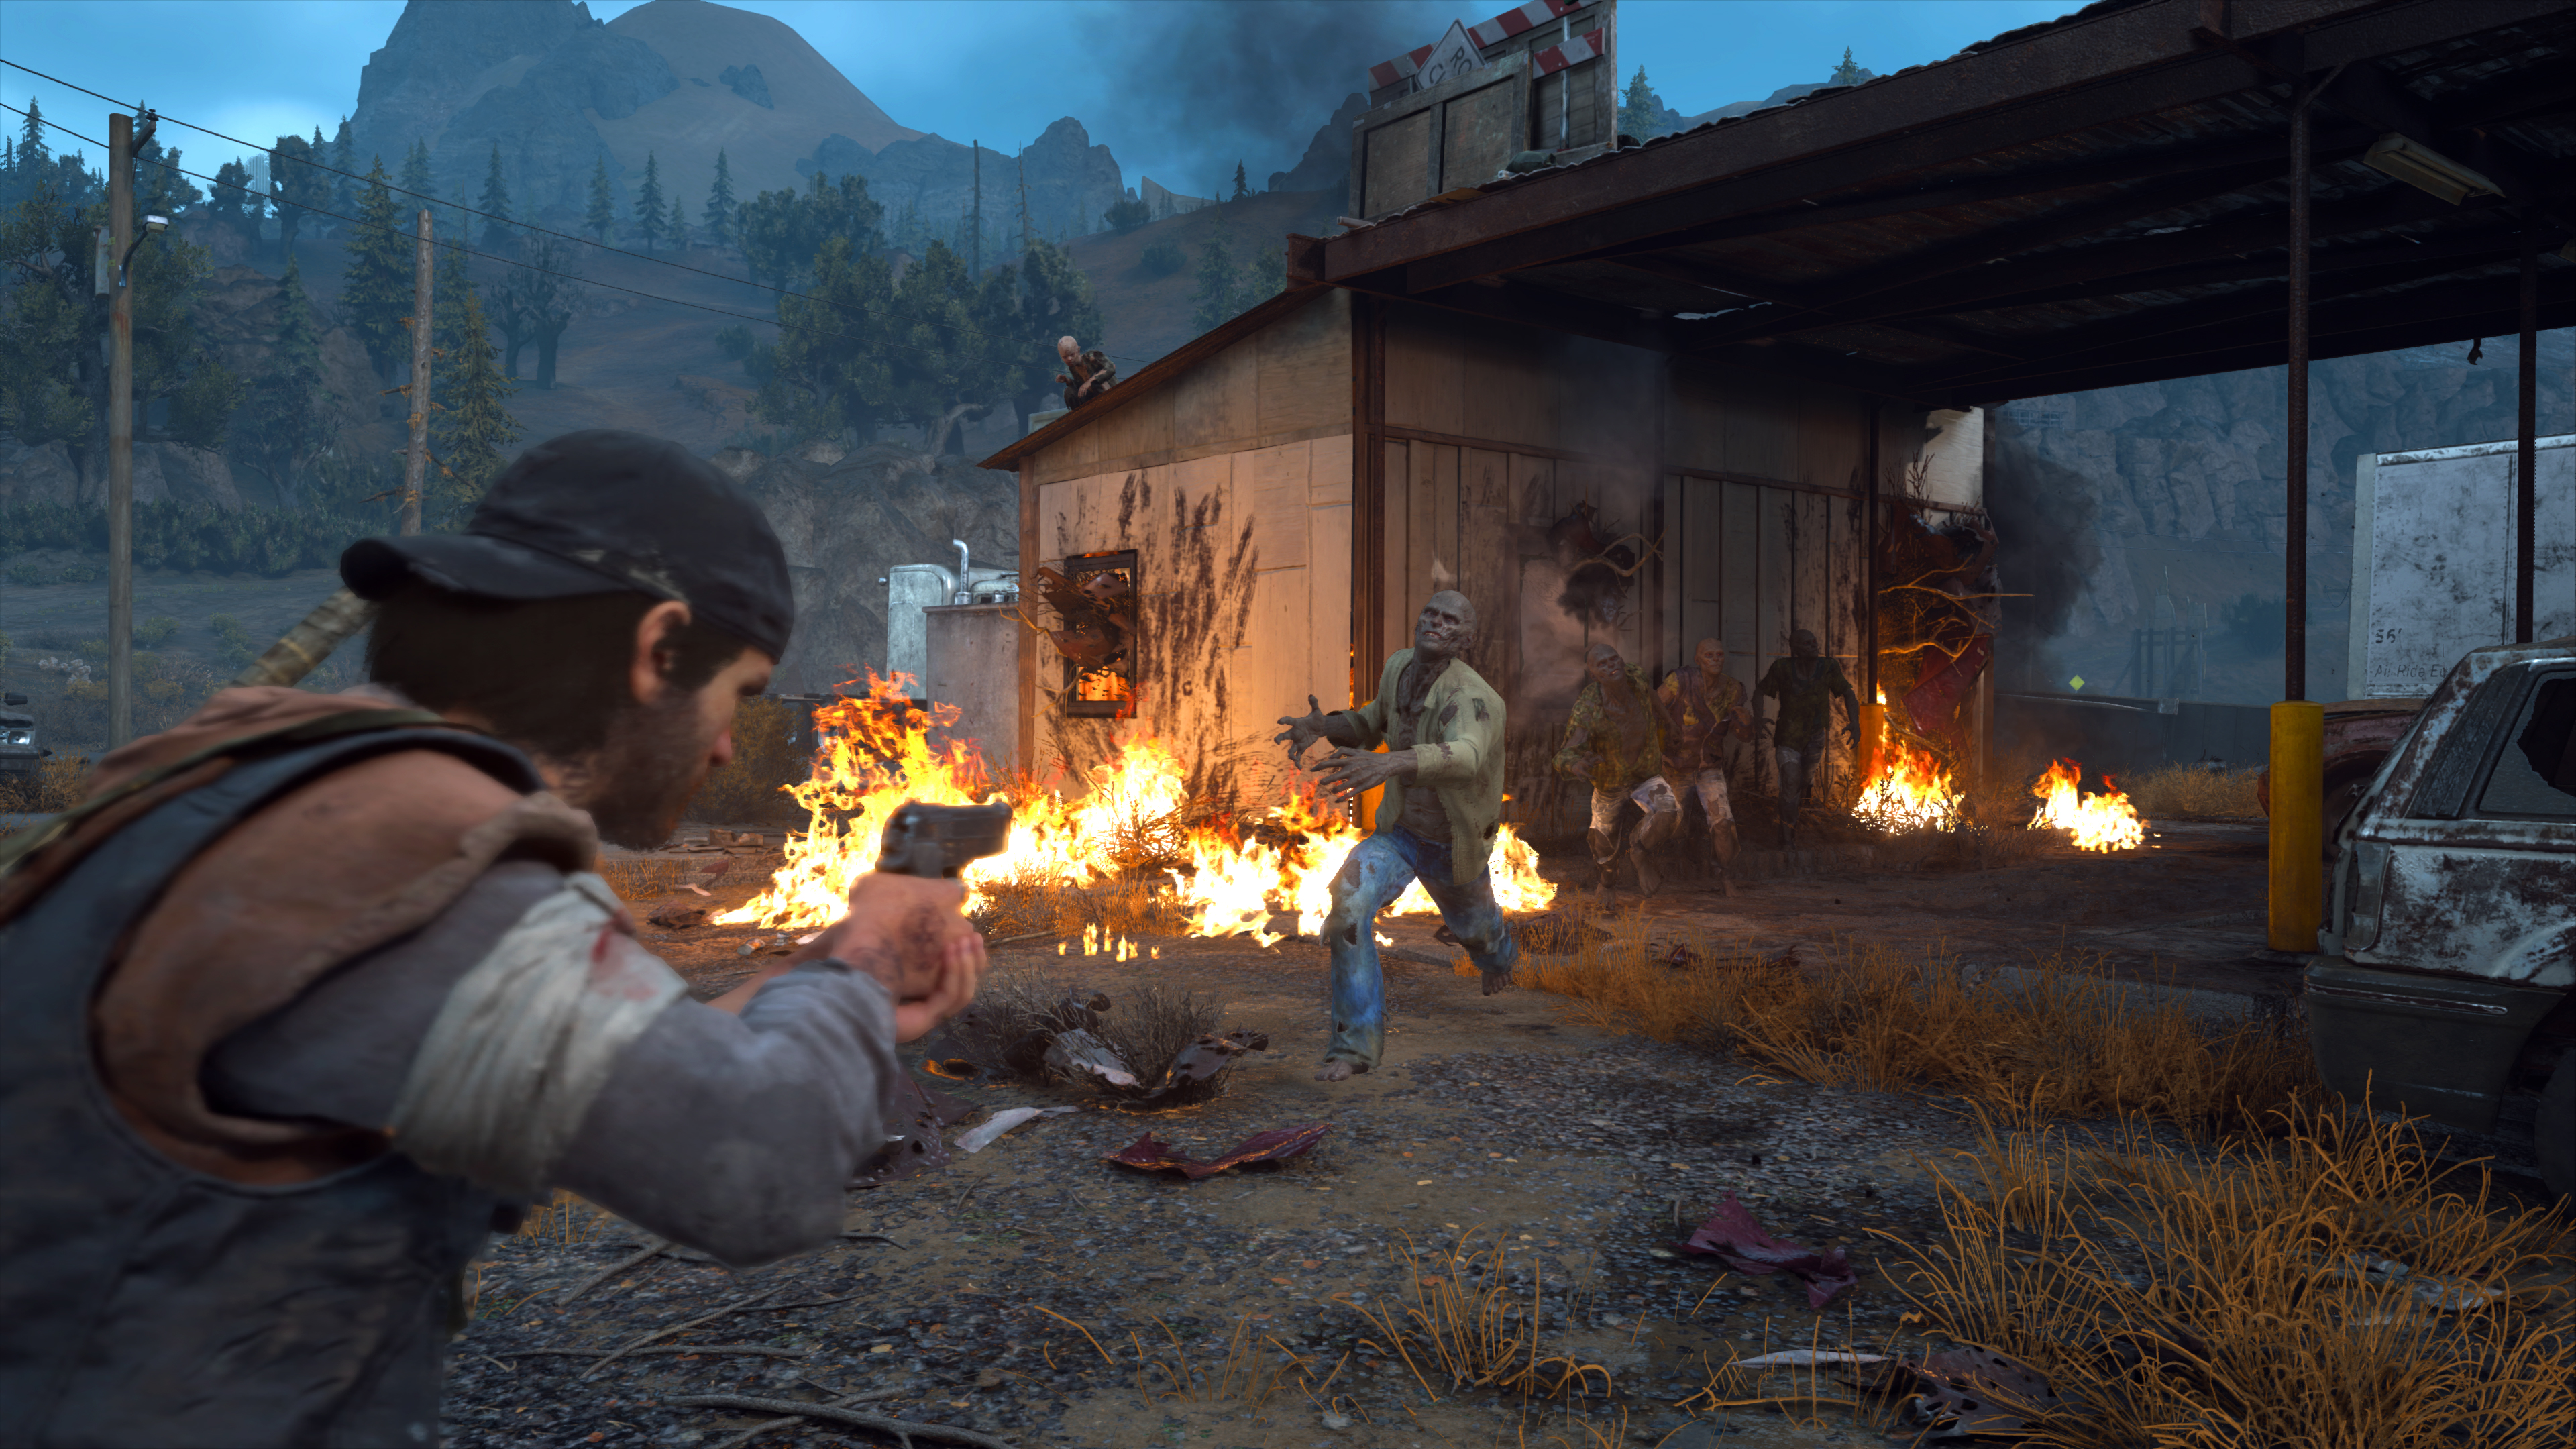 Days Gone Sales Show It Is Second Best Selling Game Of 2019 in the UK